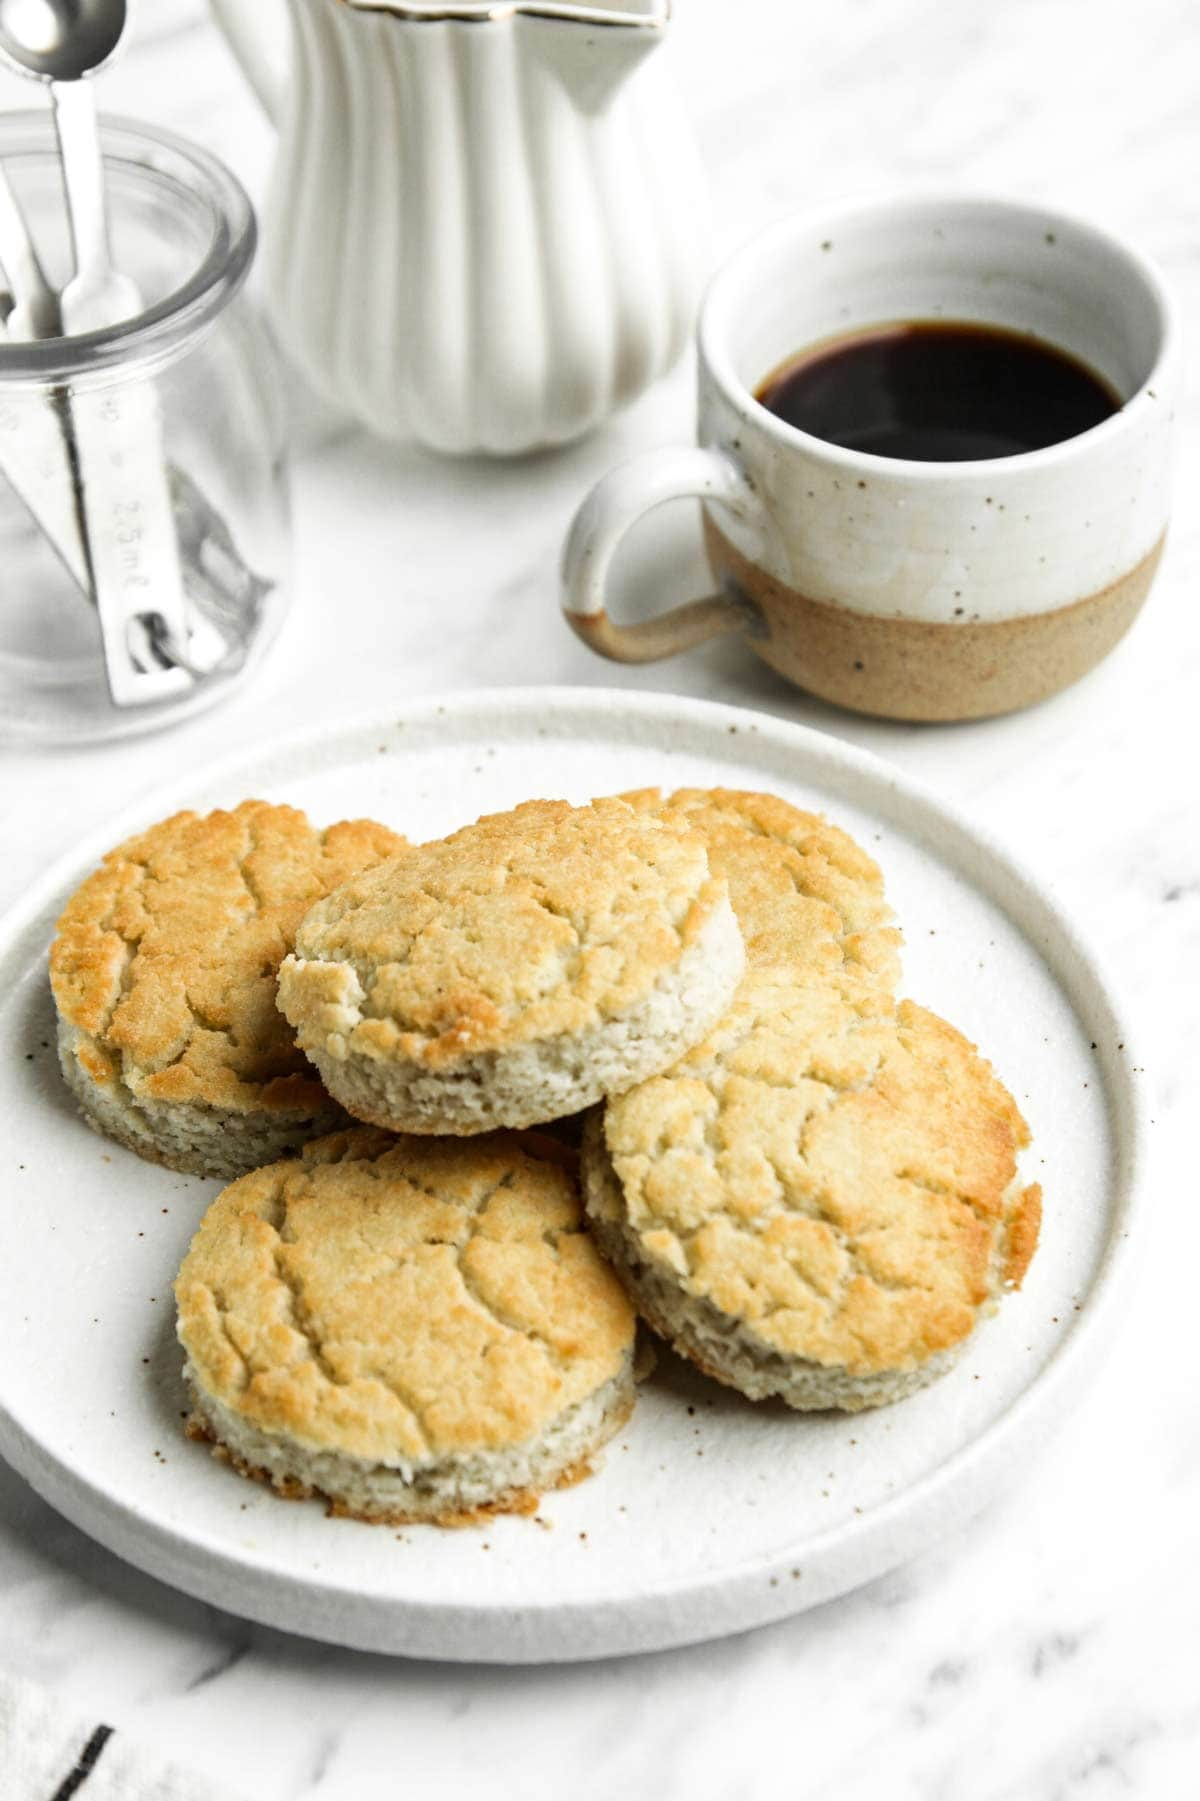 Low Carb Biscuits on plate with coffee mug in background